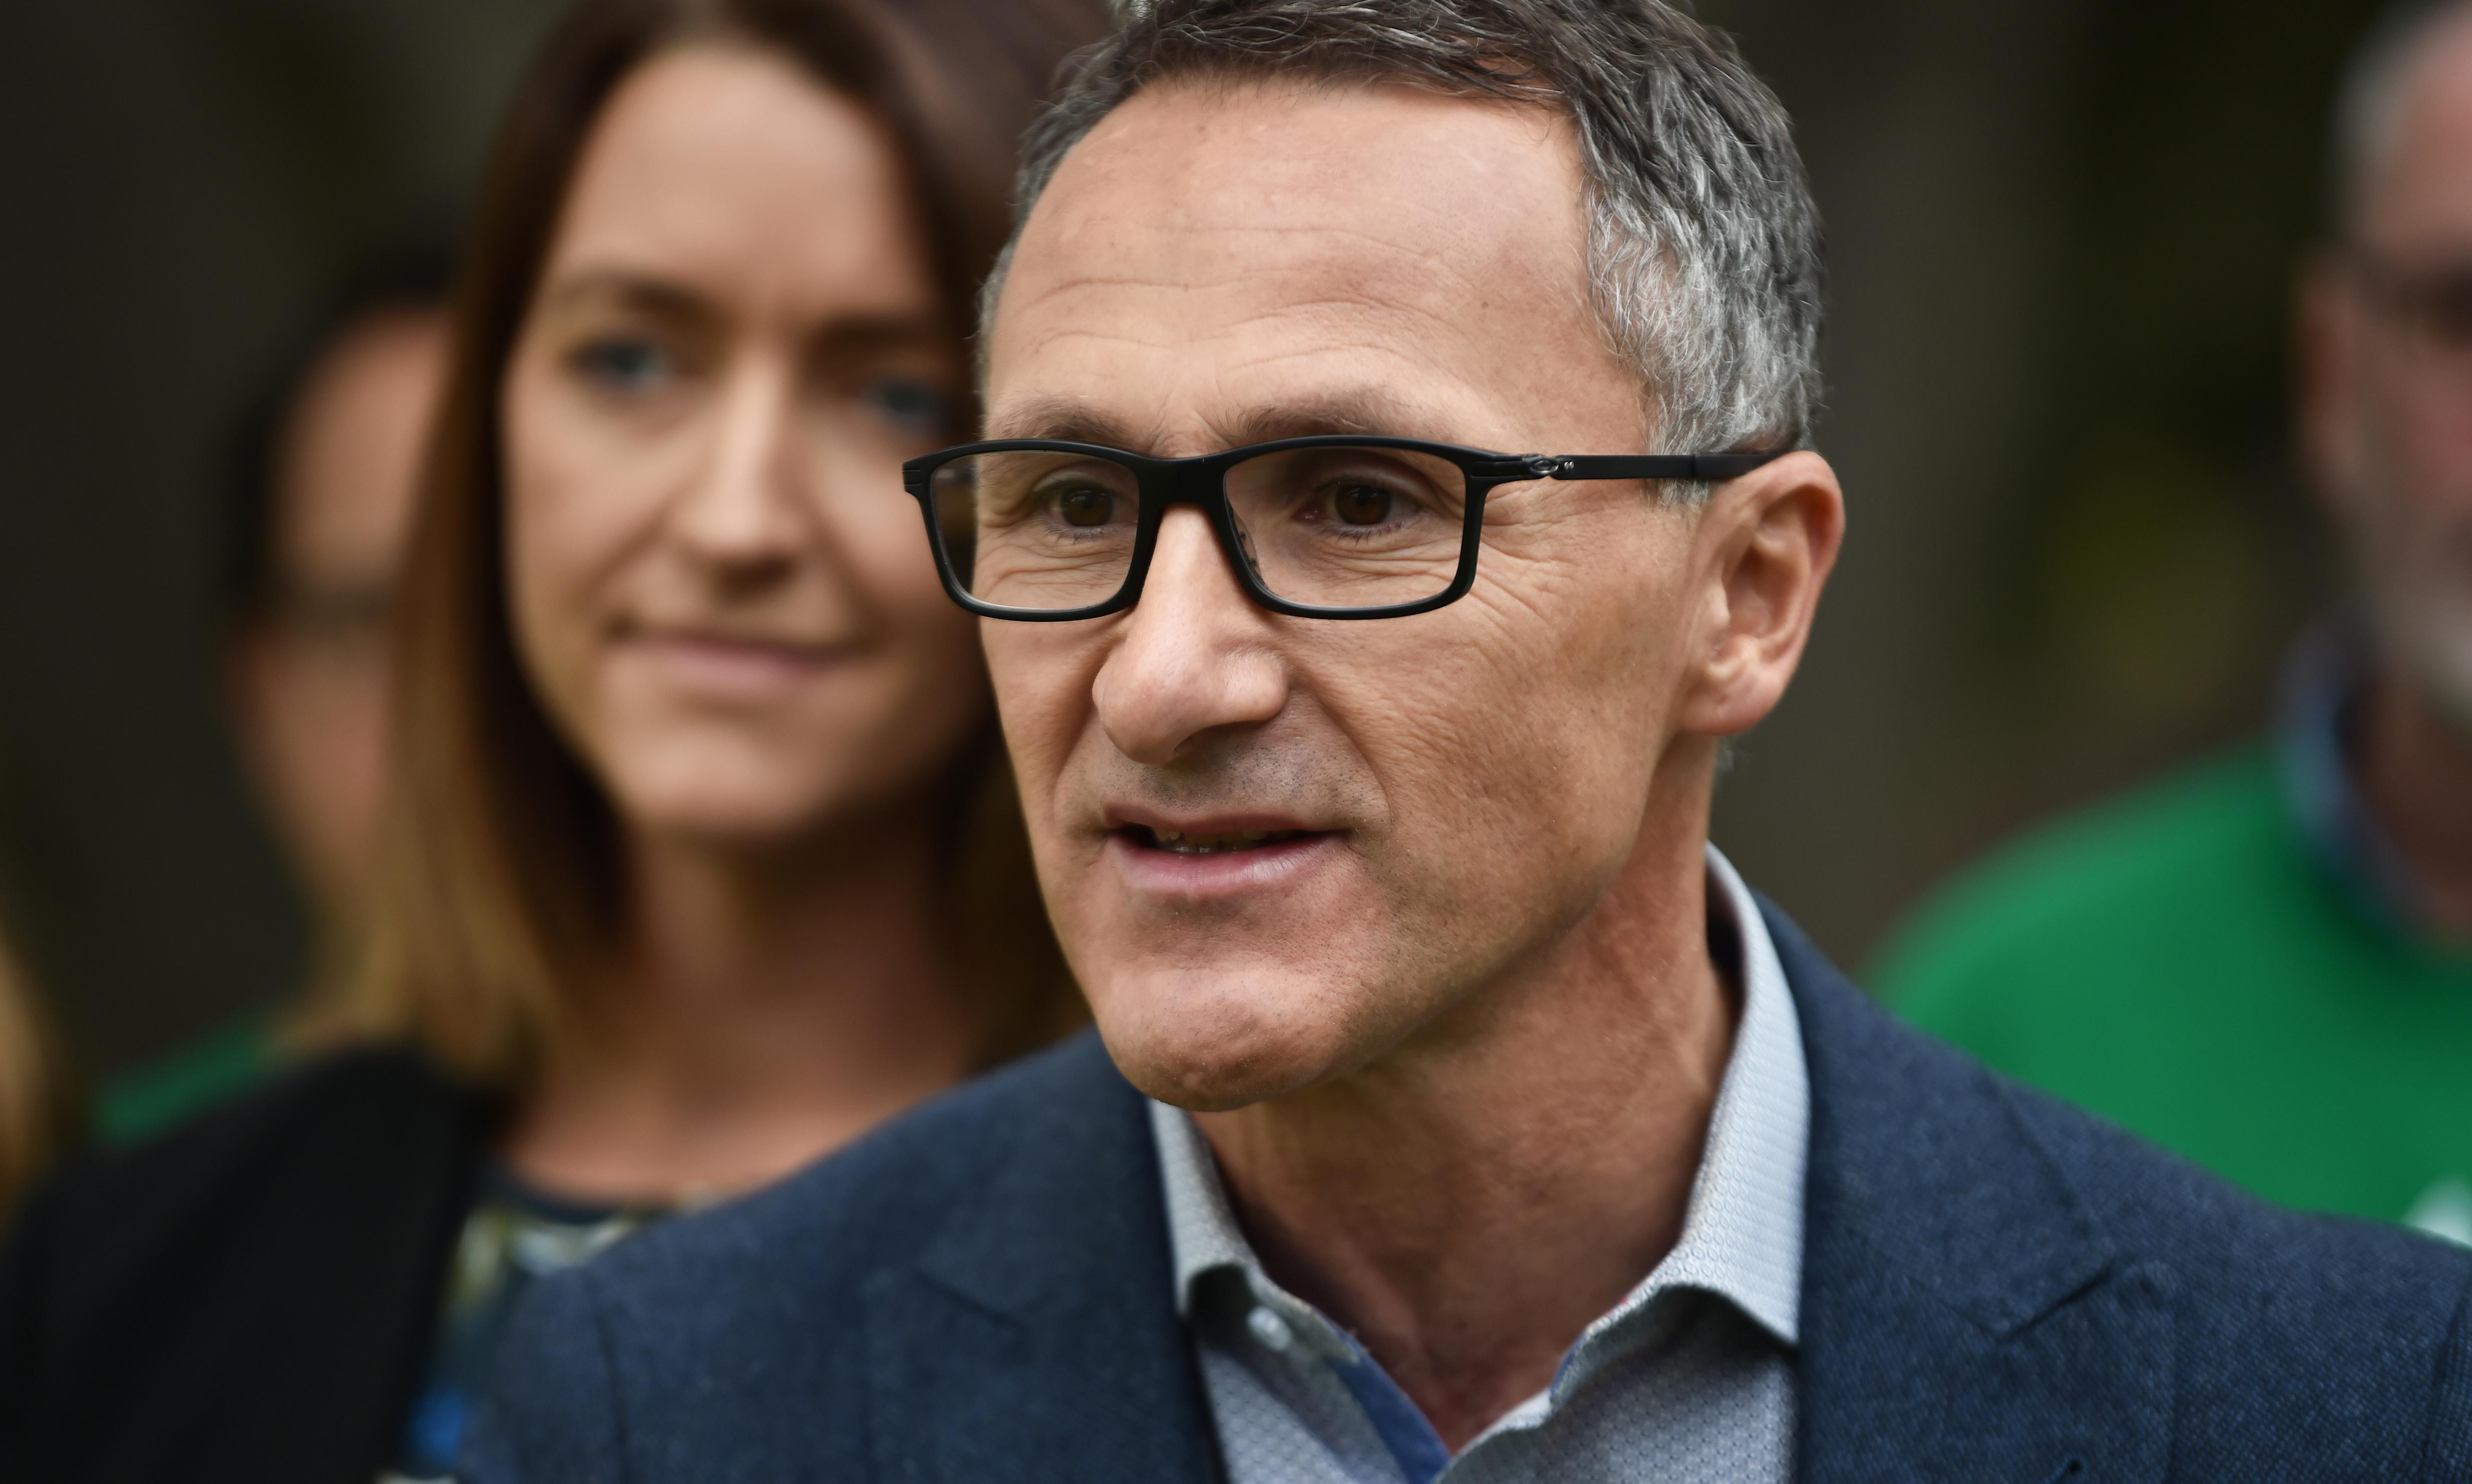 Richard Di Natale: Labor should come to negotiating table on climate policy